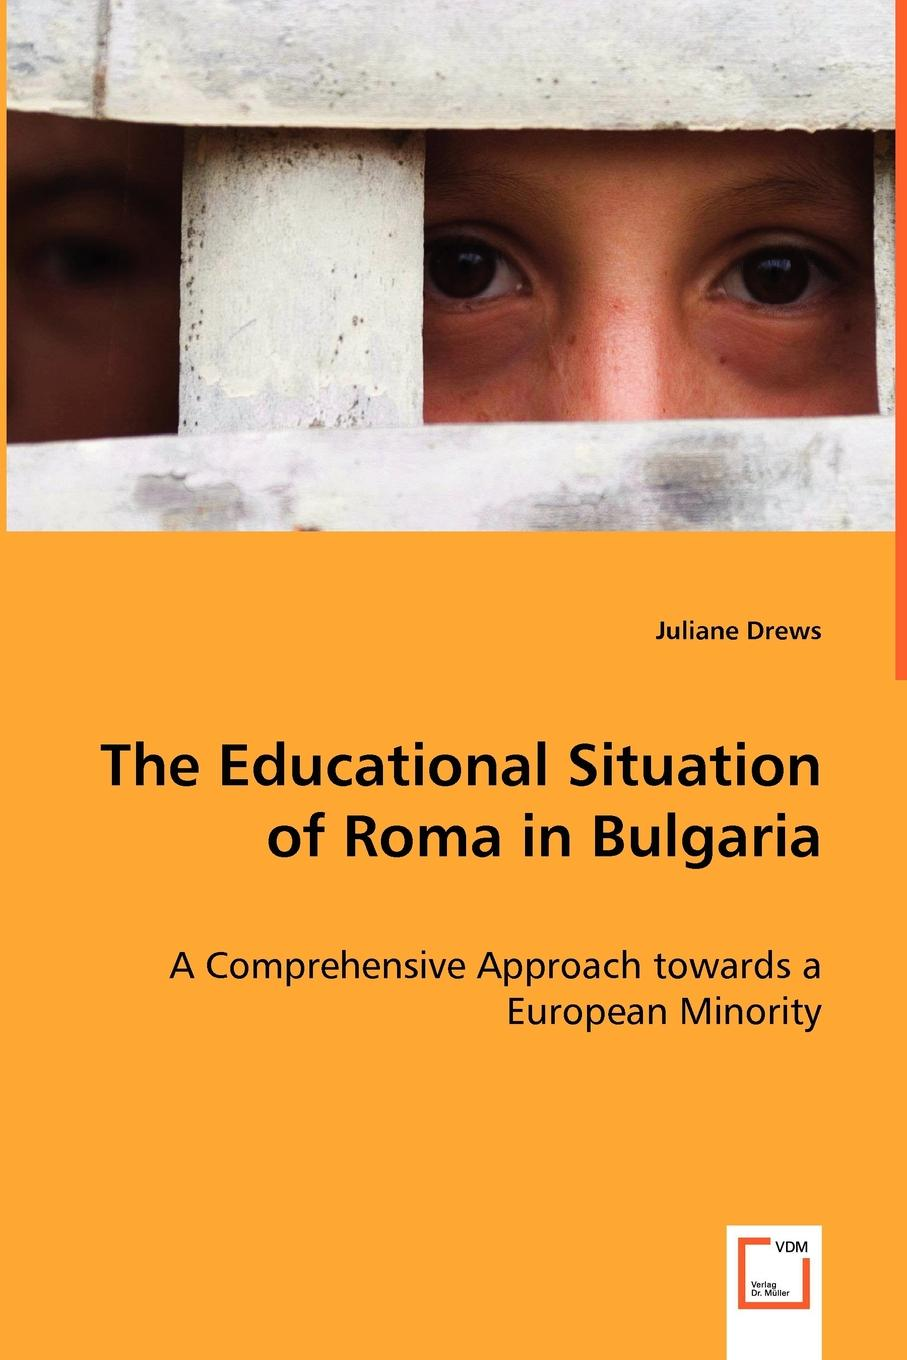 цена на Juliane Drews The Educational Situation of Roma in Bulgaria